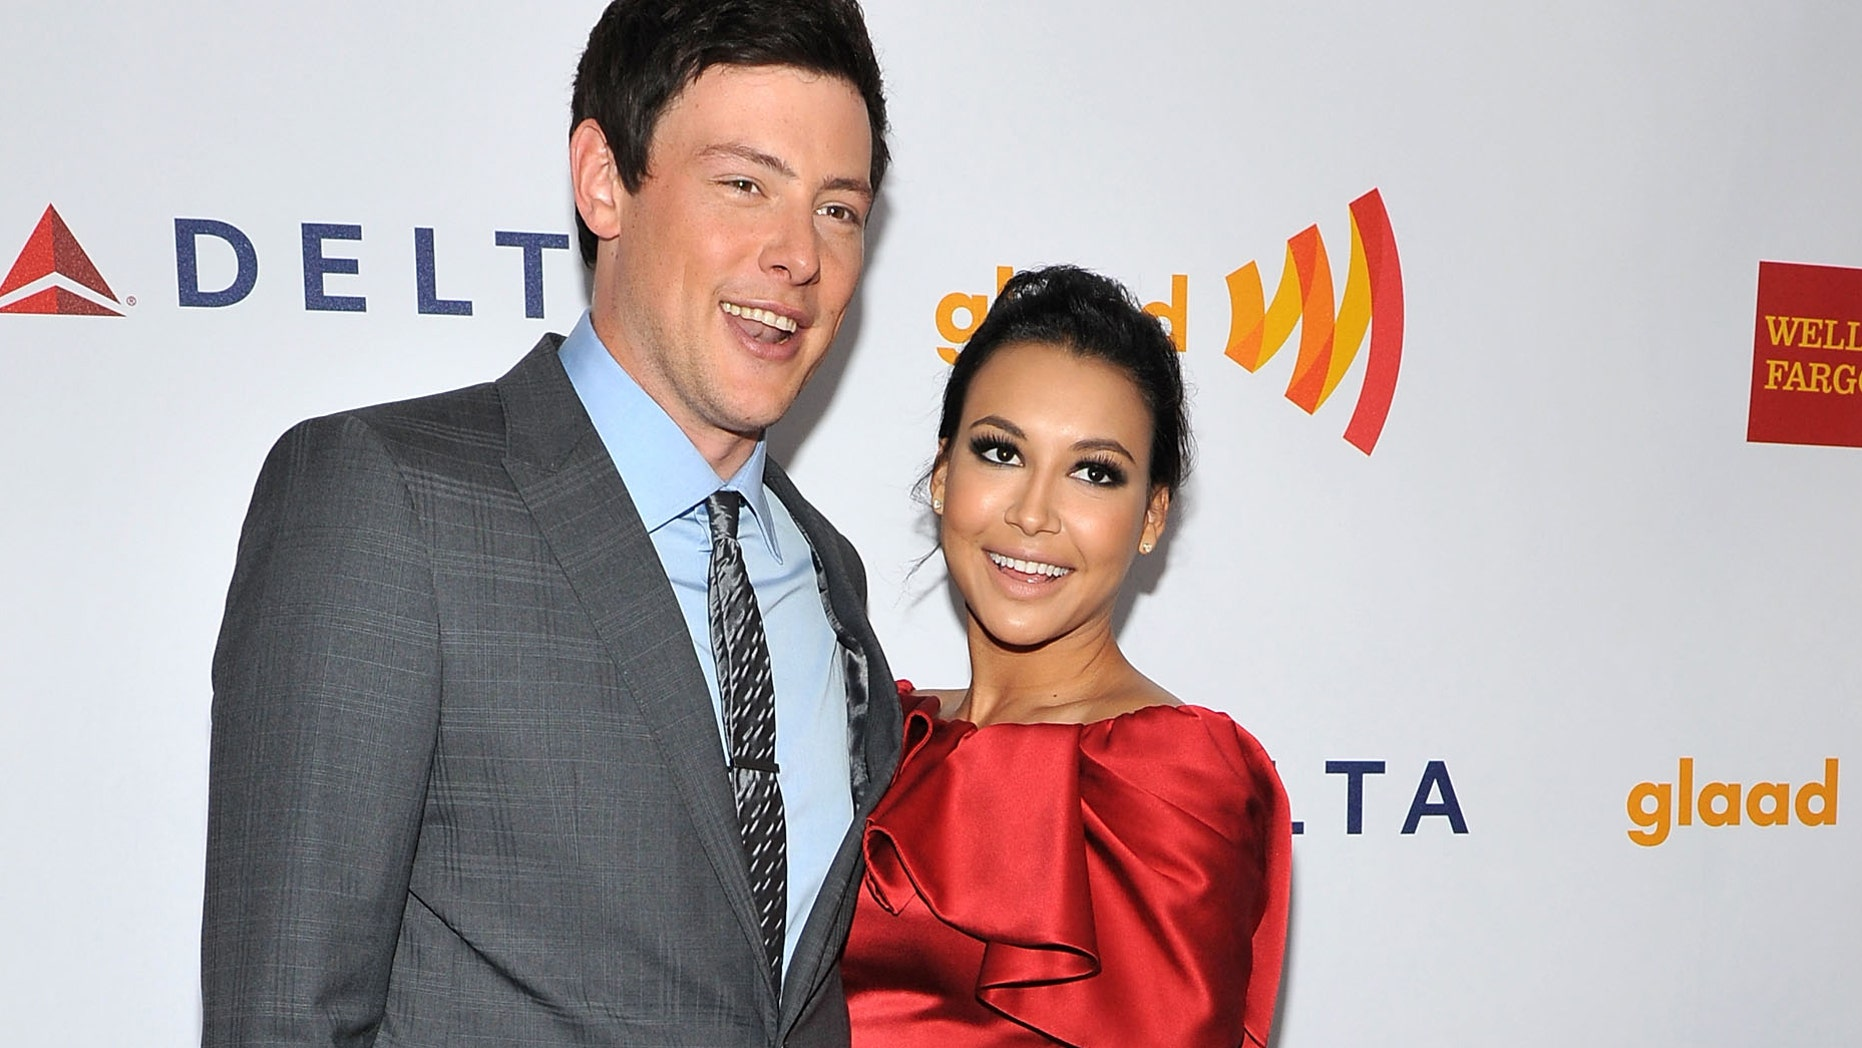 Actors Cory Monteith and Naya Rivera attend the Annual GLAAD Media Awards on March 24, in New York City.